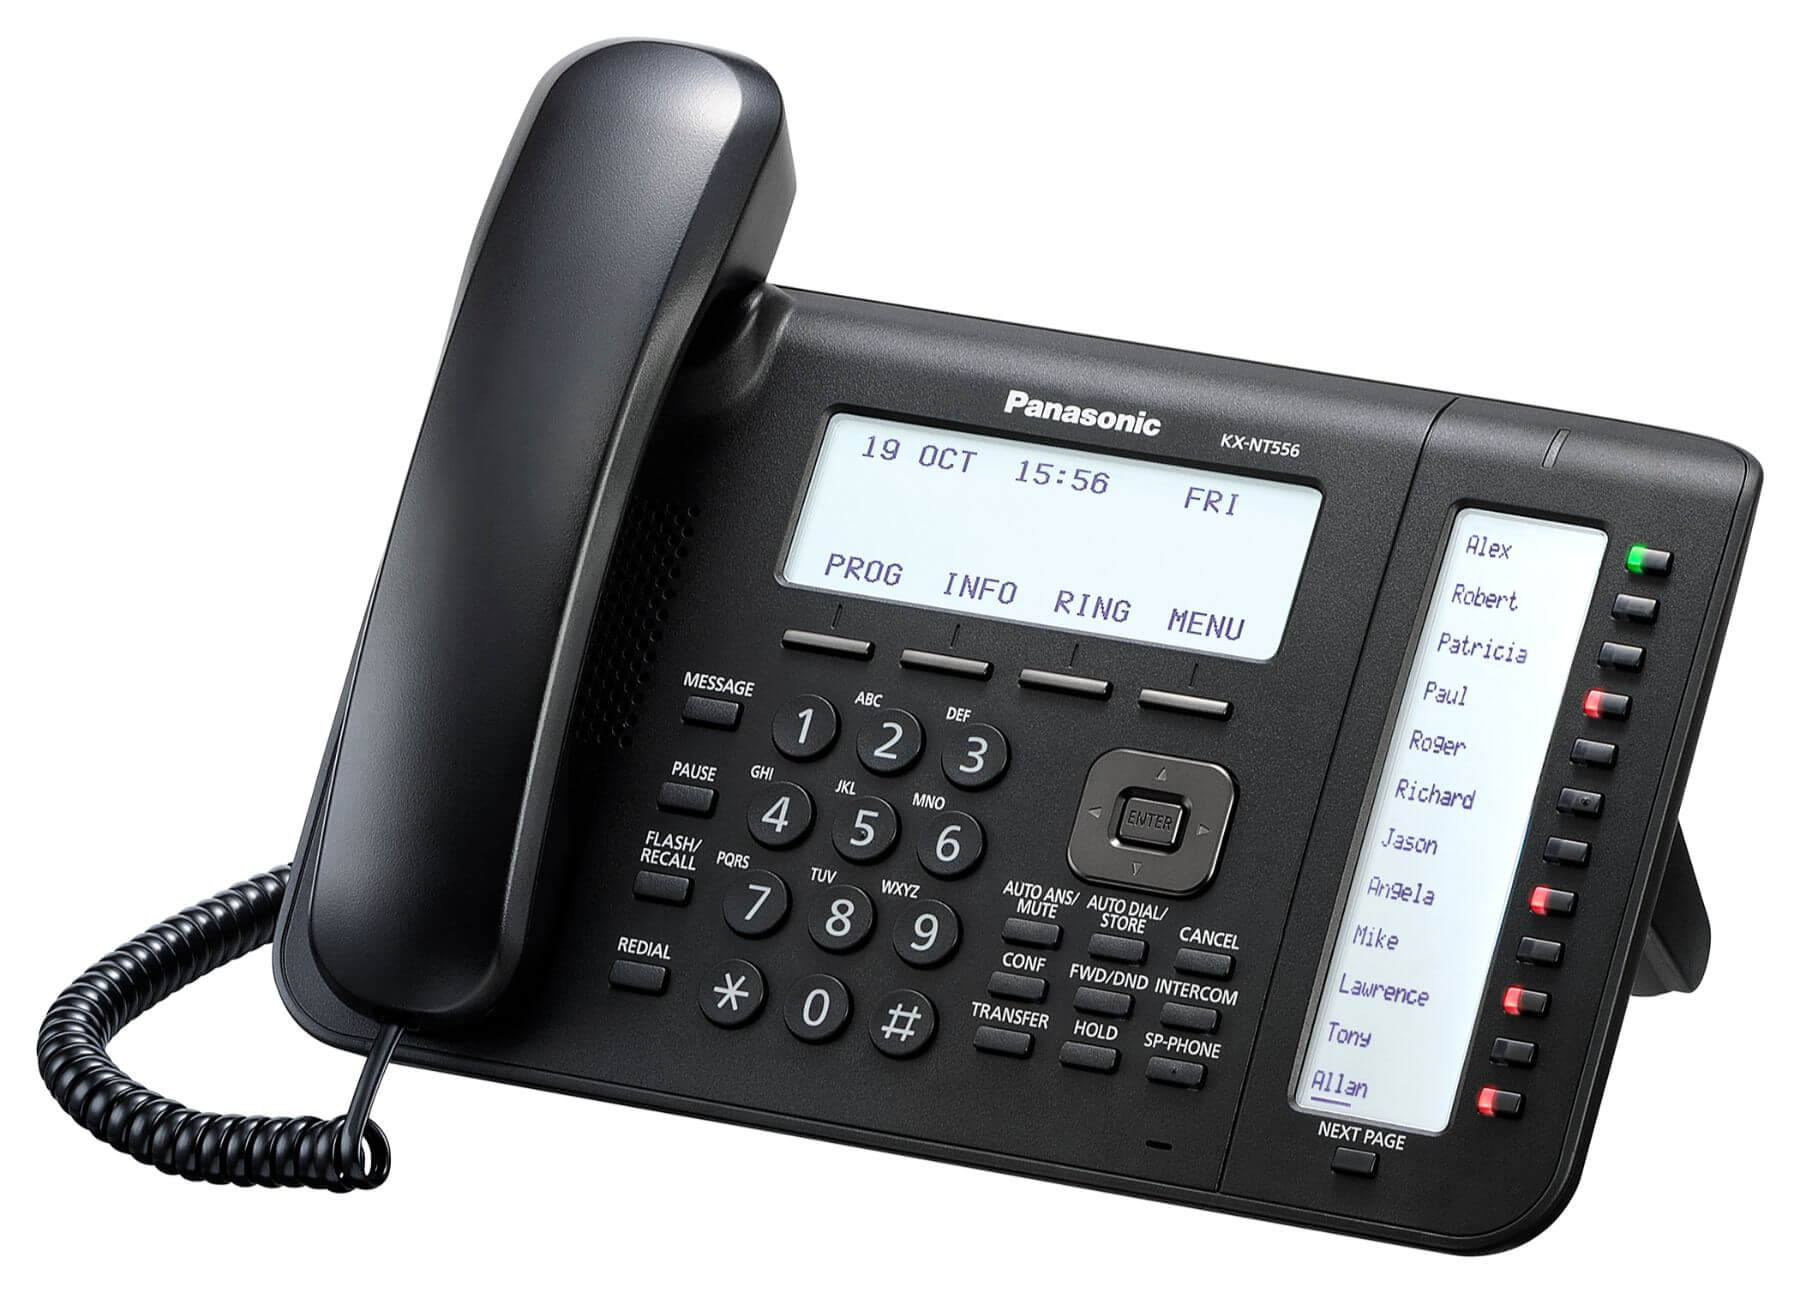 Panasonic KX-NT556 IP Phone Image